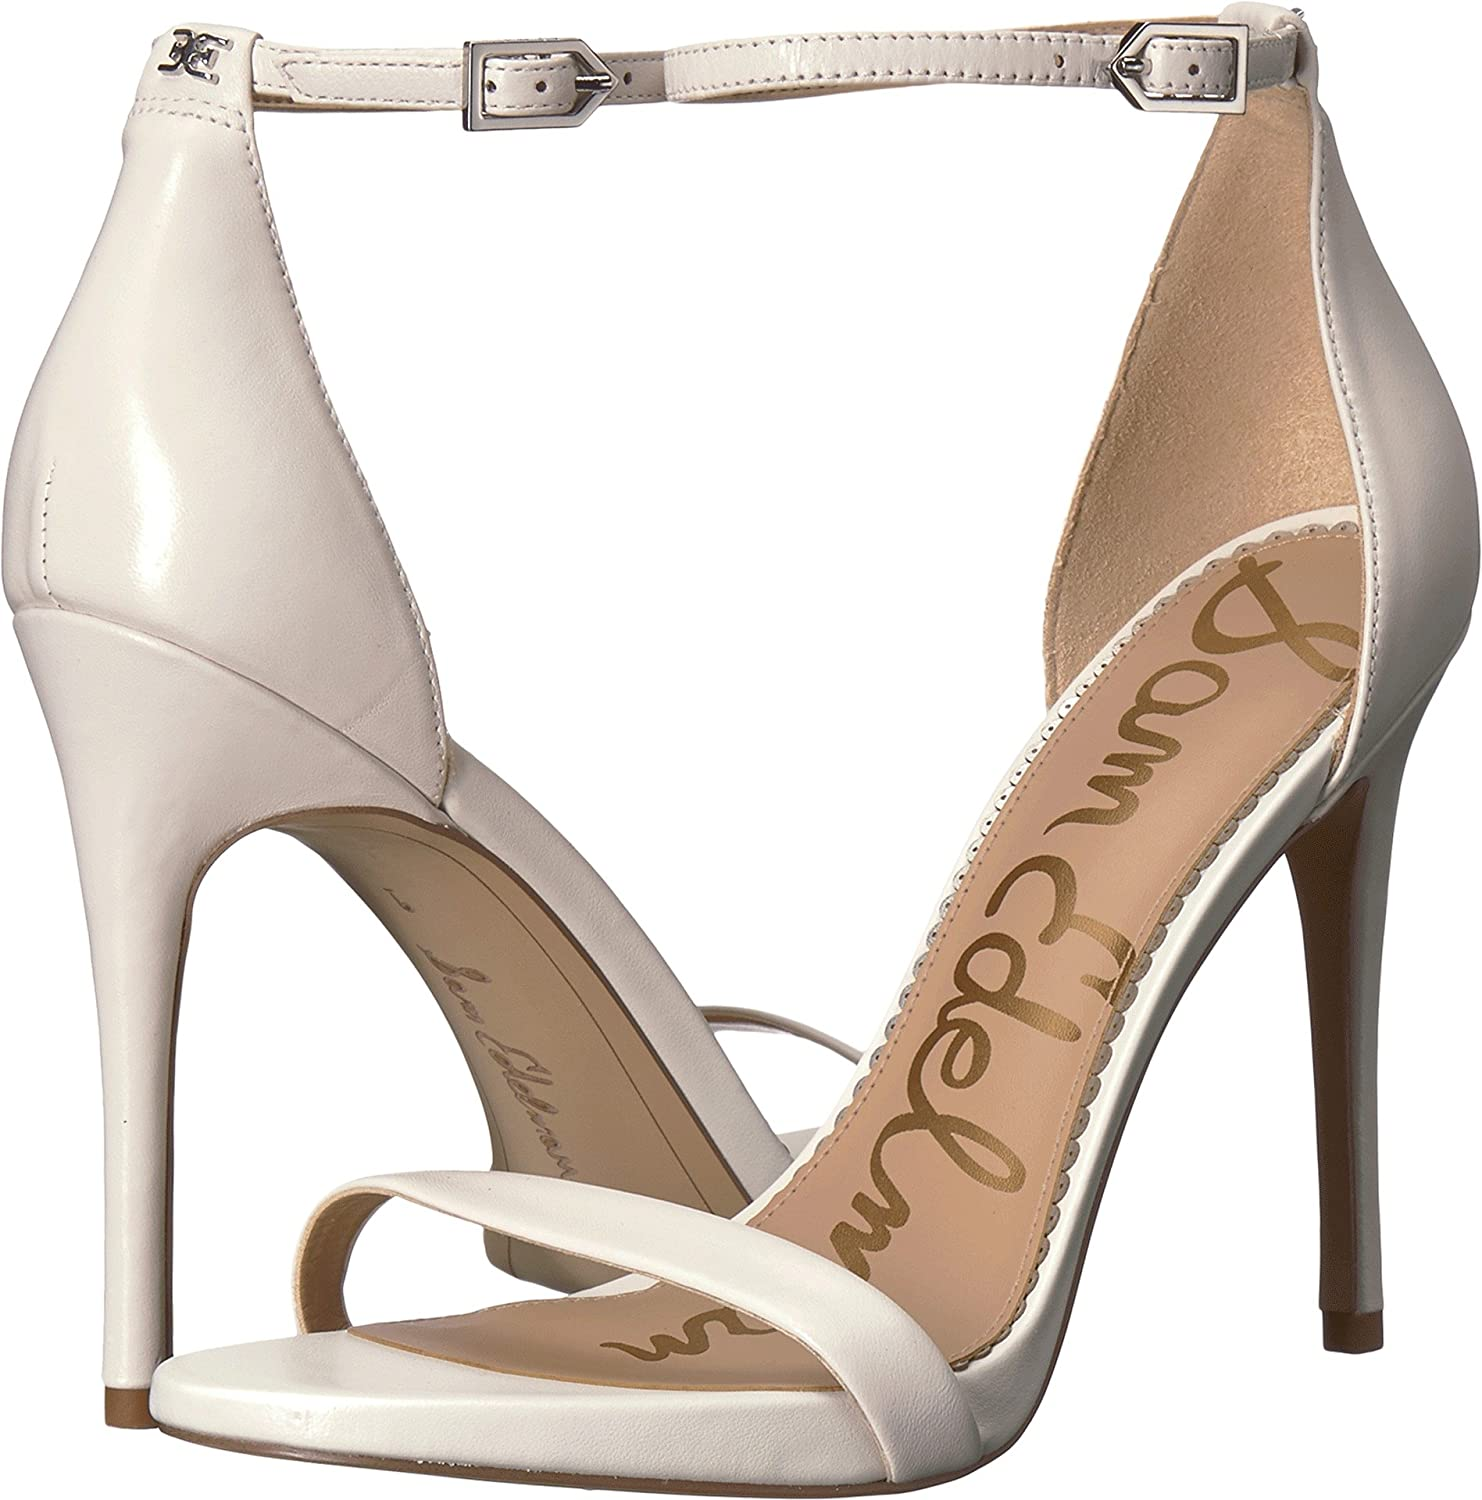 Bright White Nappa Luva Leather Sam Edelman Womens Ariella Heeled Sandal